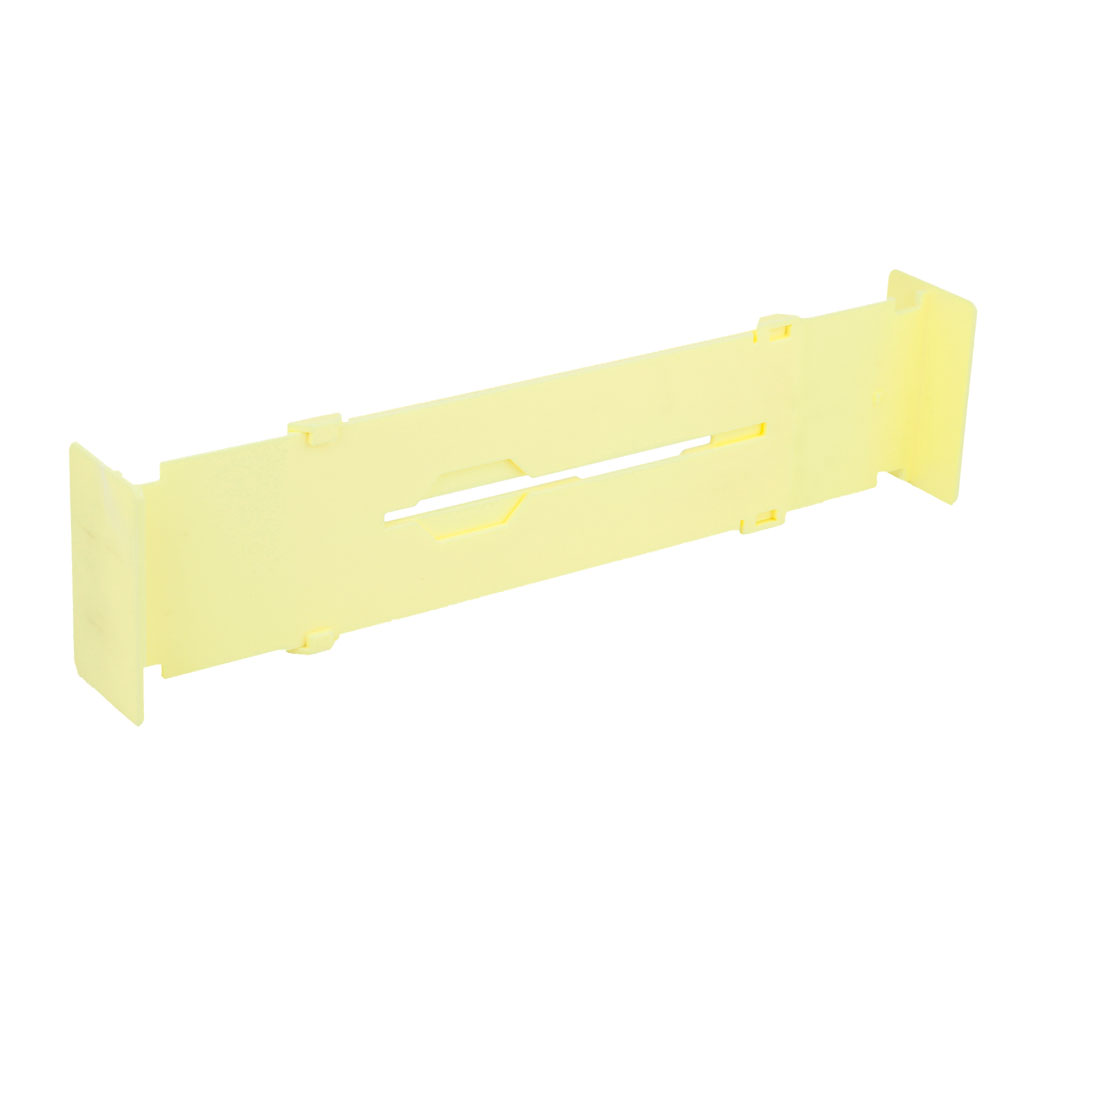 Lemon Yellow Plastic Flexible Clapboard Dresser Drawer Divider Plate